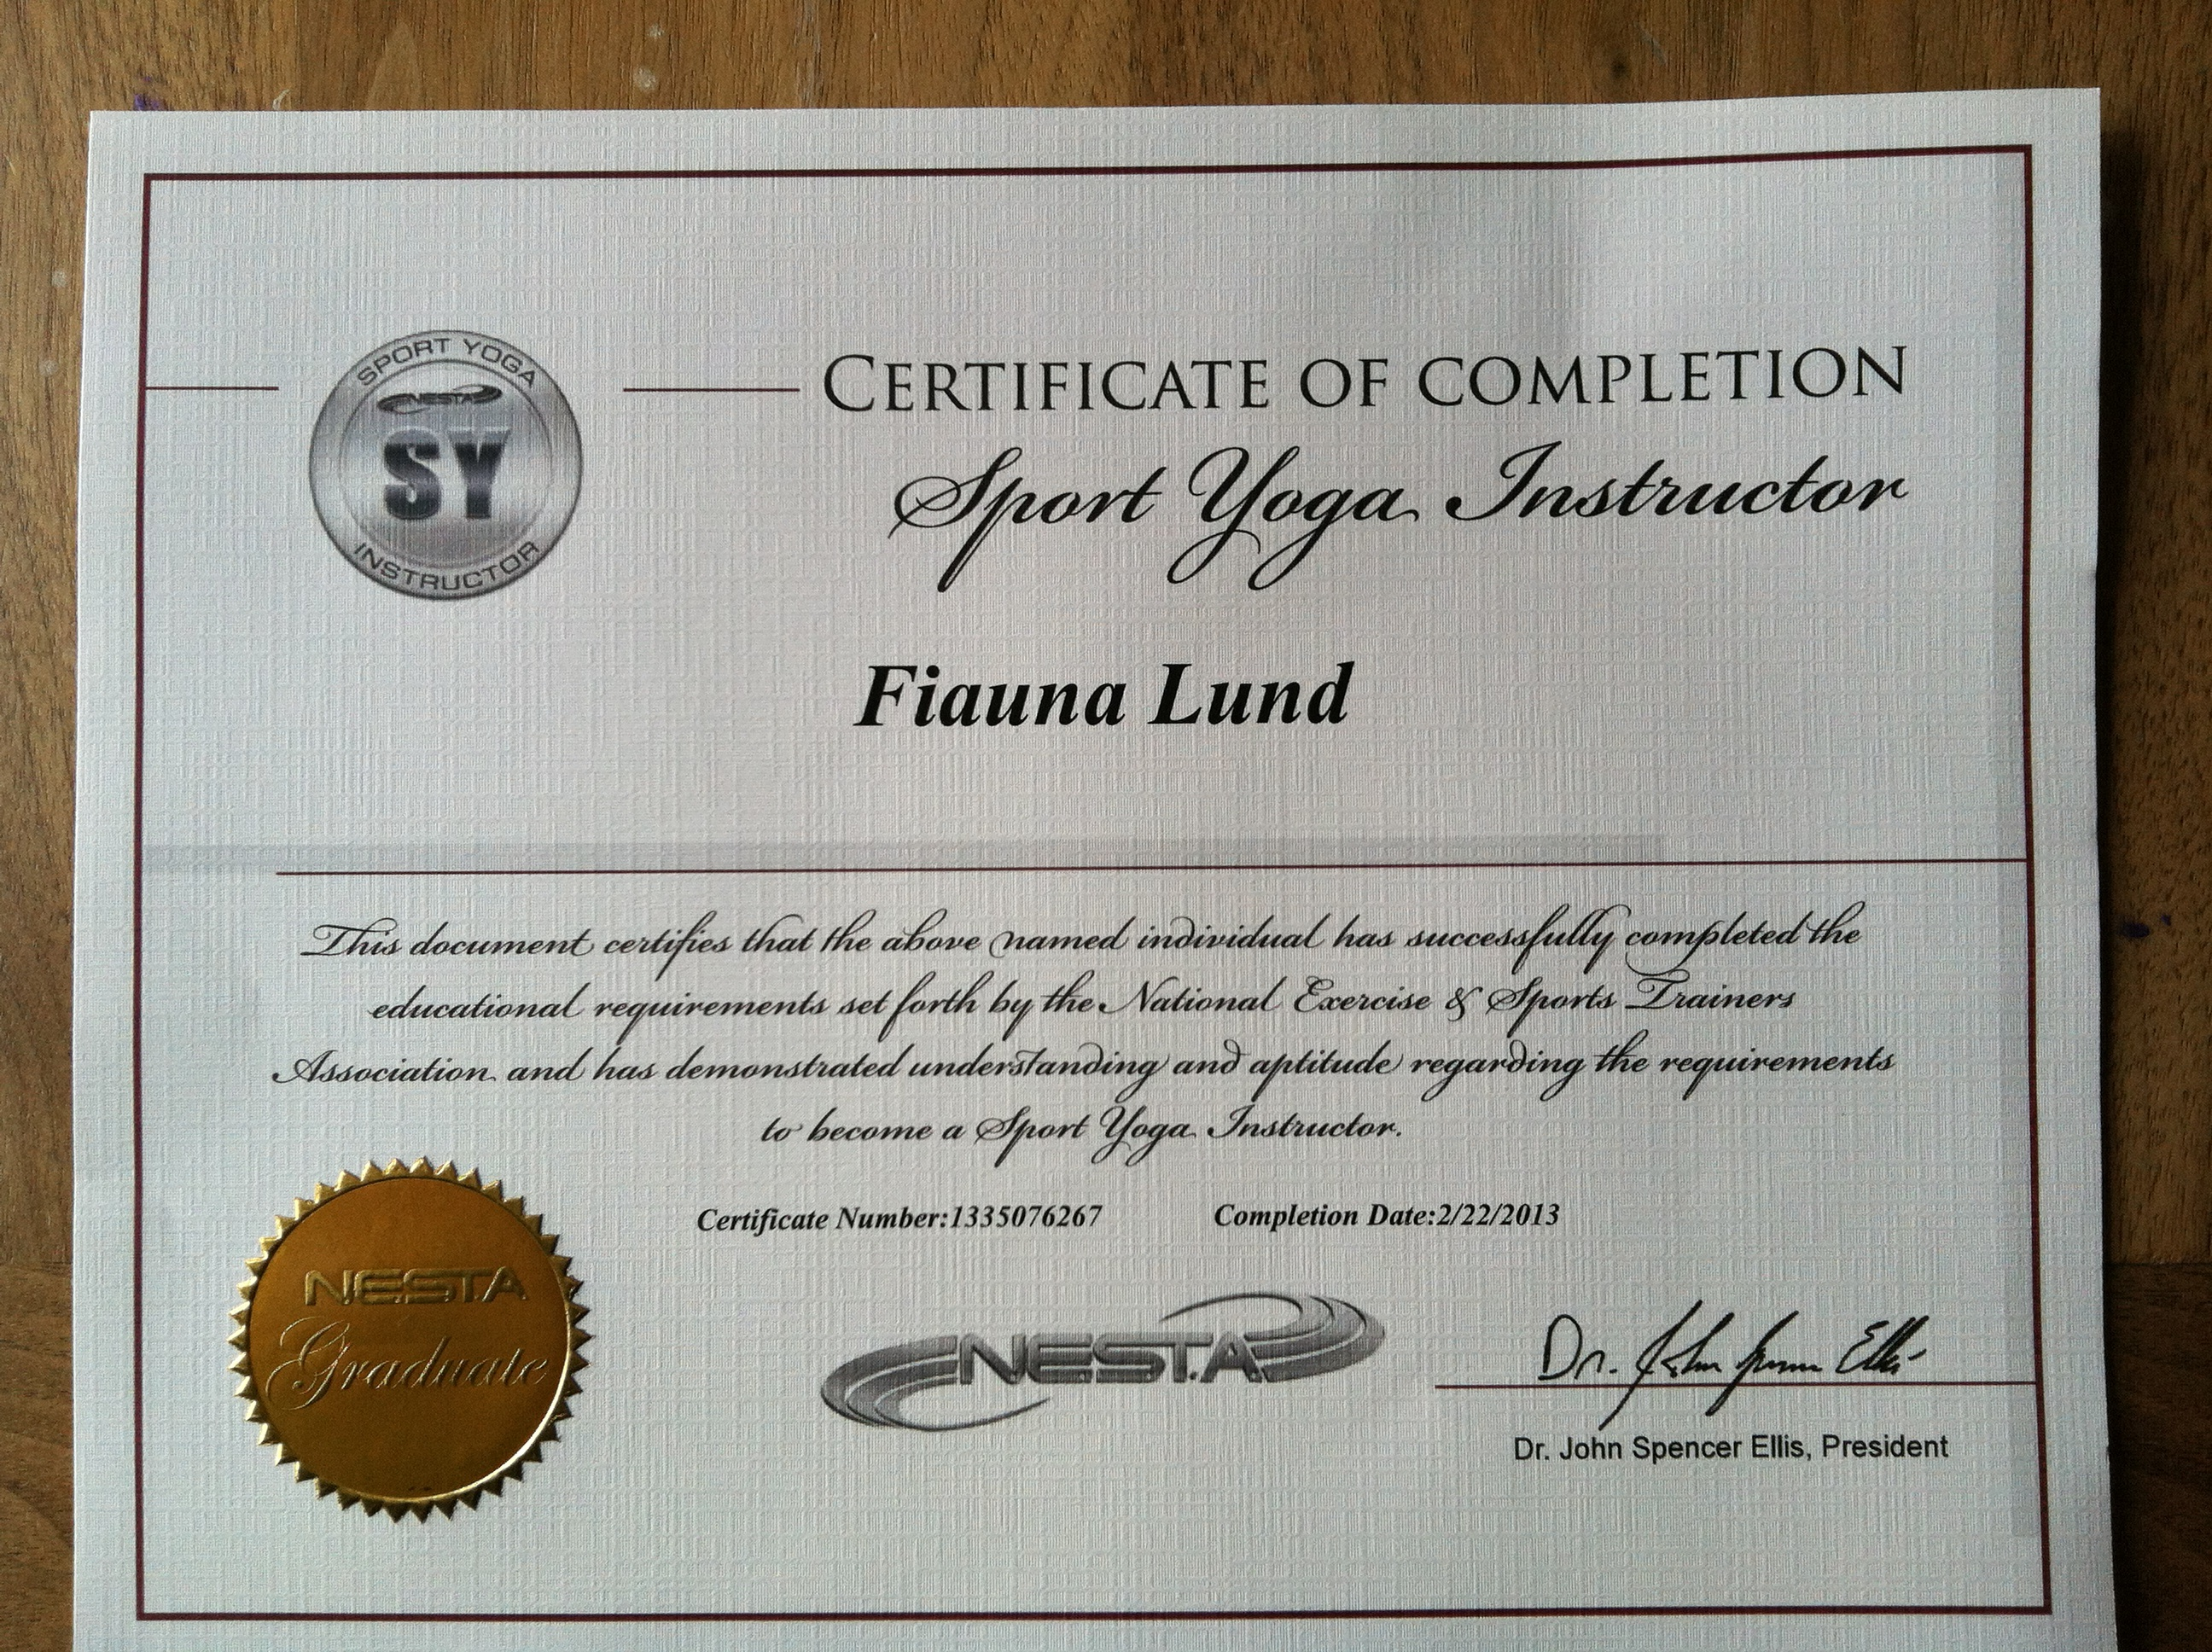 Yoga fifis fit farm i completed my sport yoga certification why sport yoga as apposed to traditional yoga well because sport yoga incorporates my other lovepilates love 1betcityfo Images